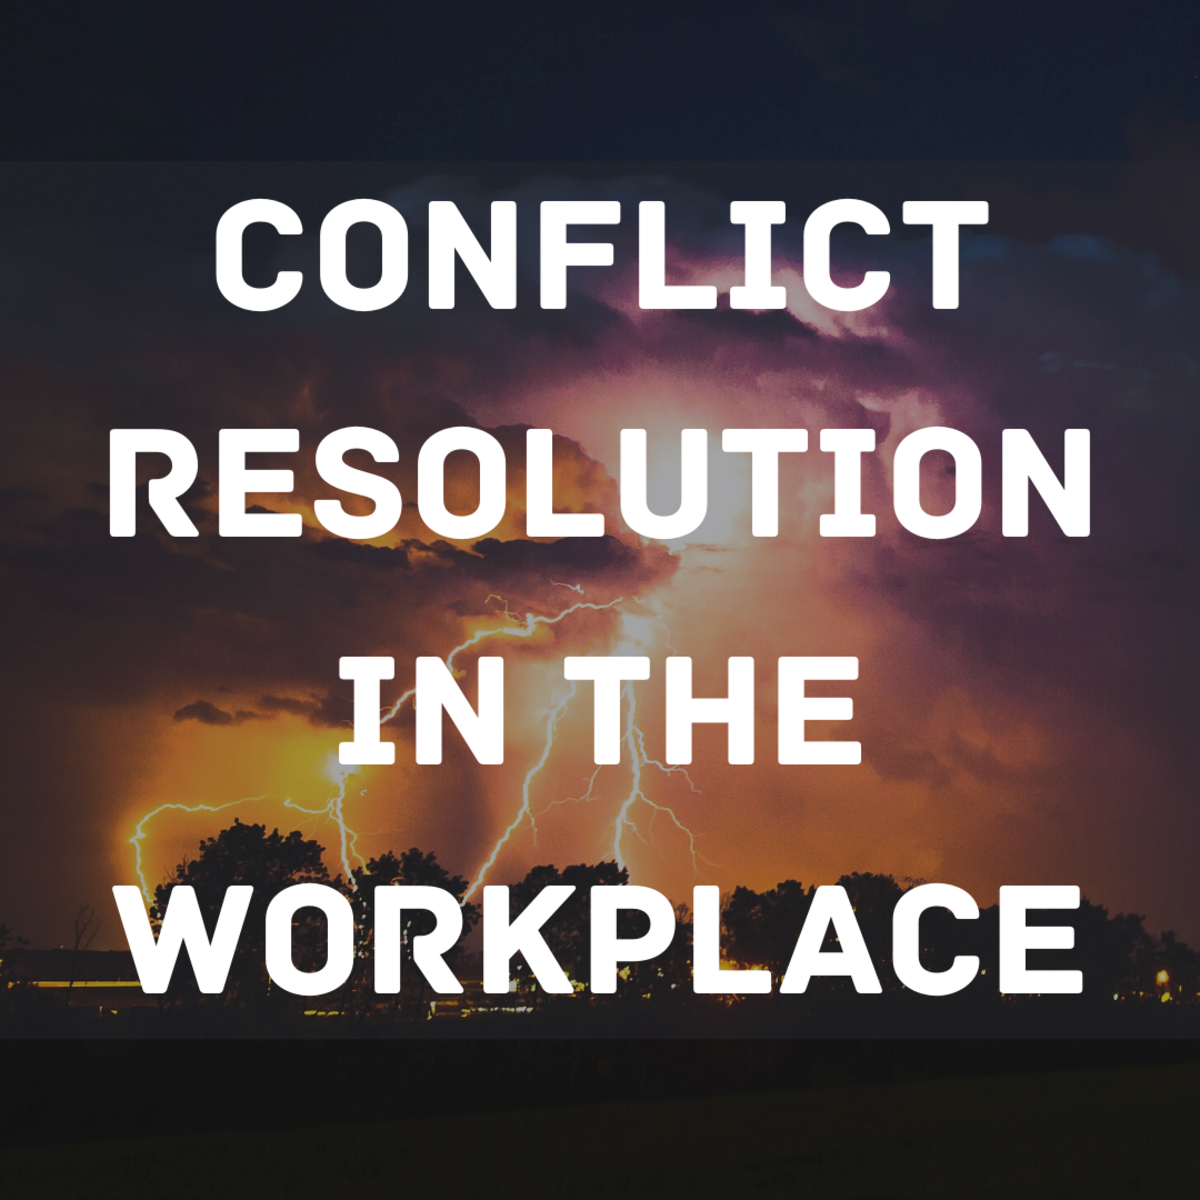 Examine the best ways to implement conflict resolution at work.